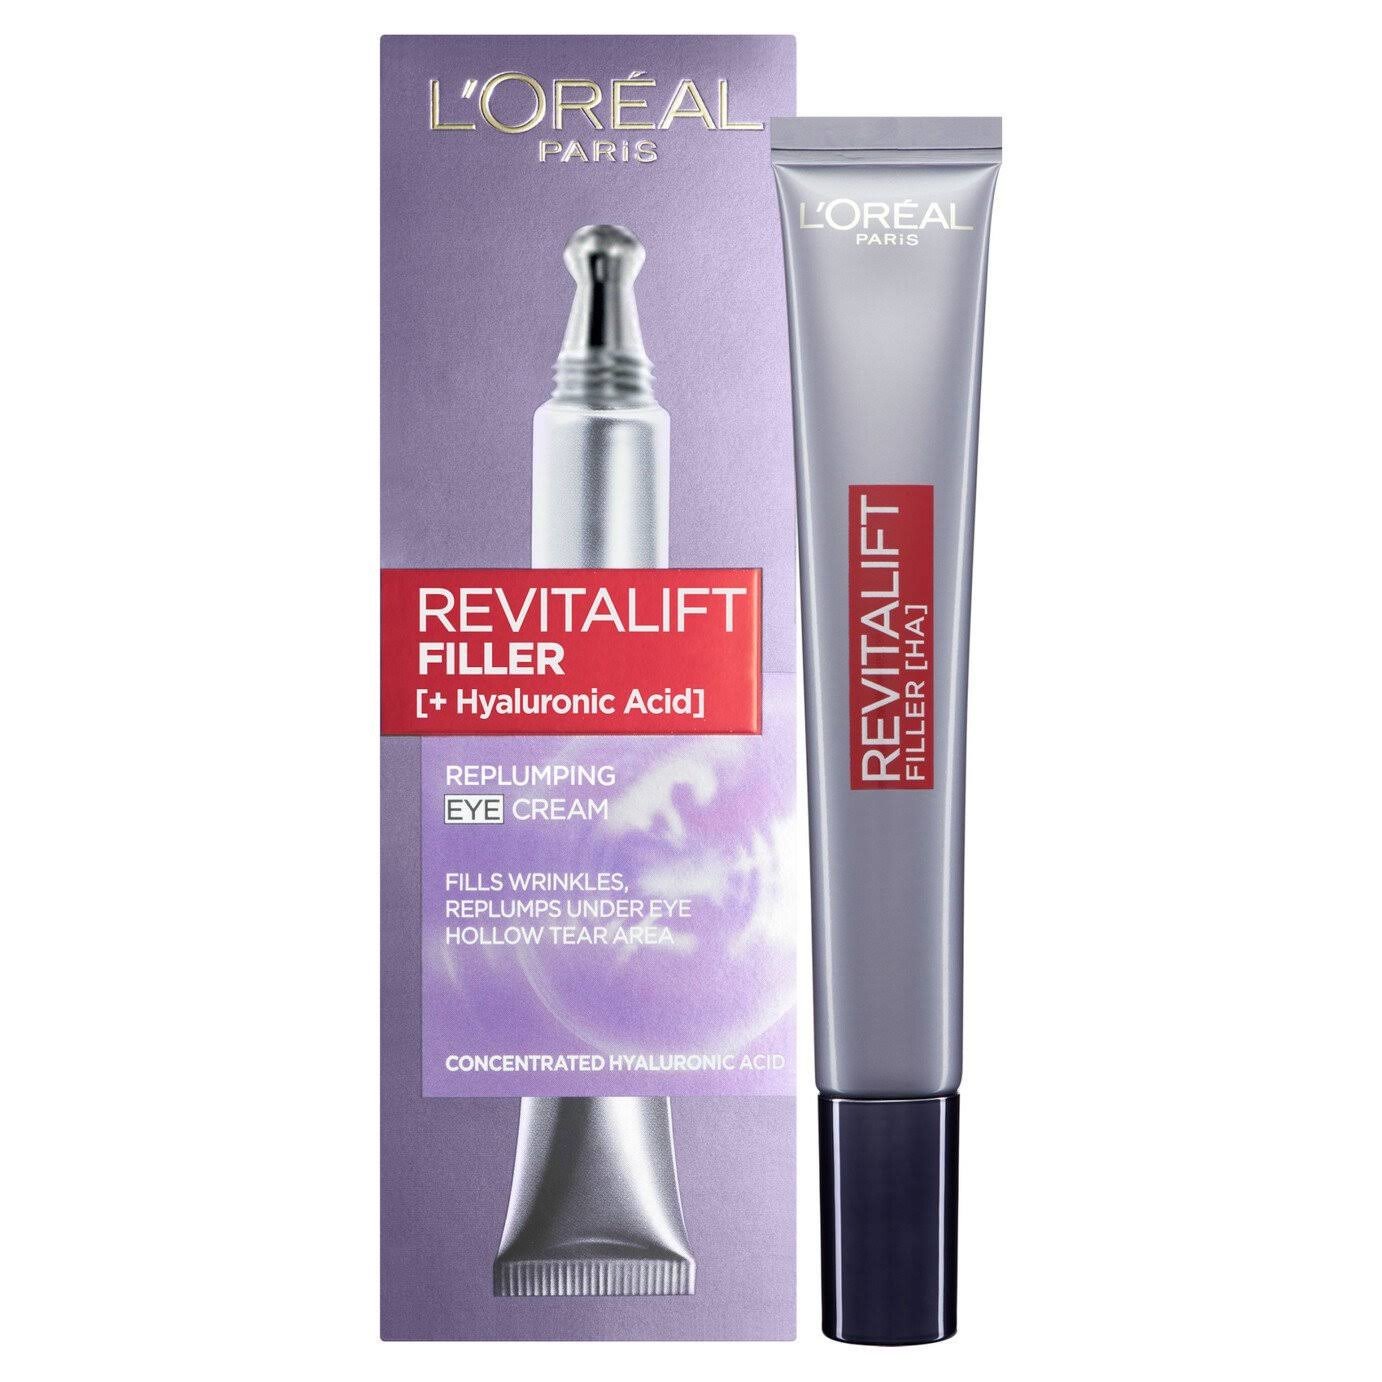 L'Oreal Paris Revitalift Filler Renew Eye Cream - 15ml